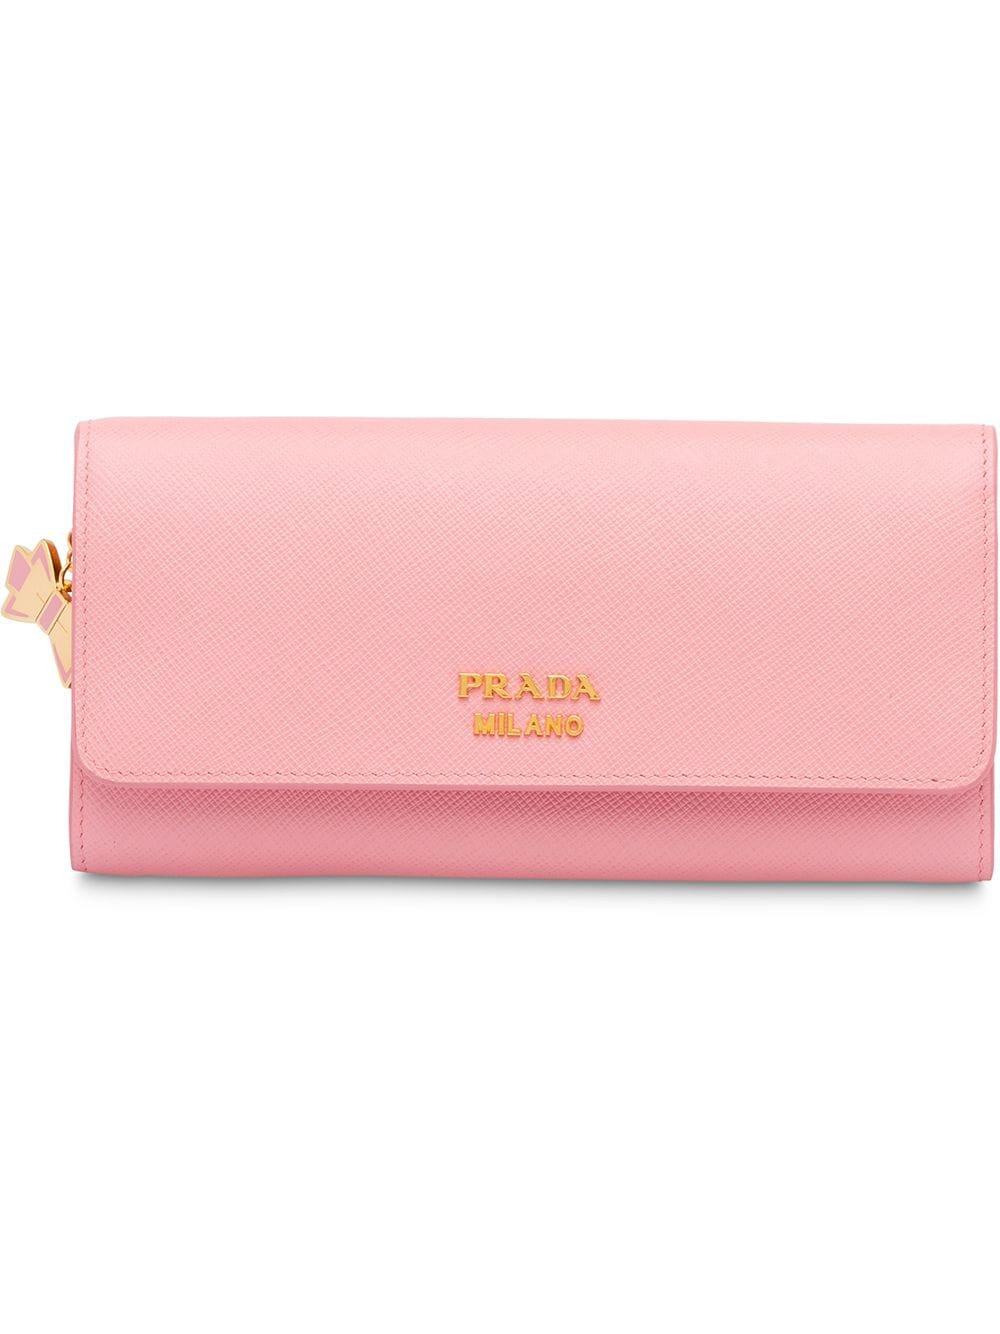 Pink Prada Large Saffiano Leather Wallet | Farfetch.com